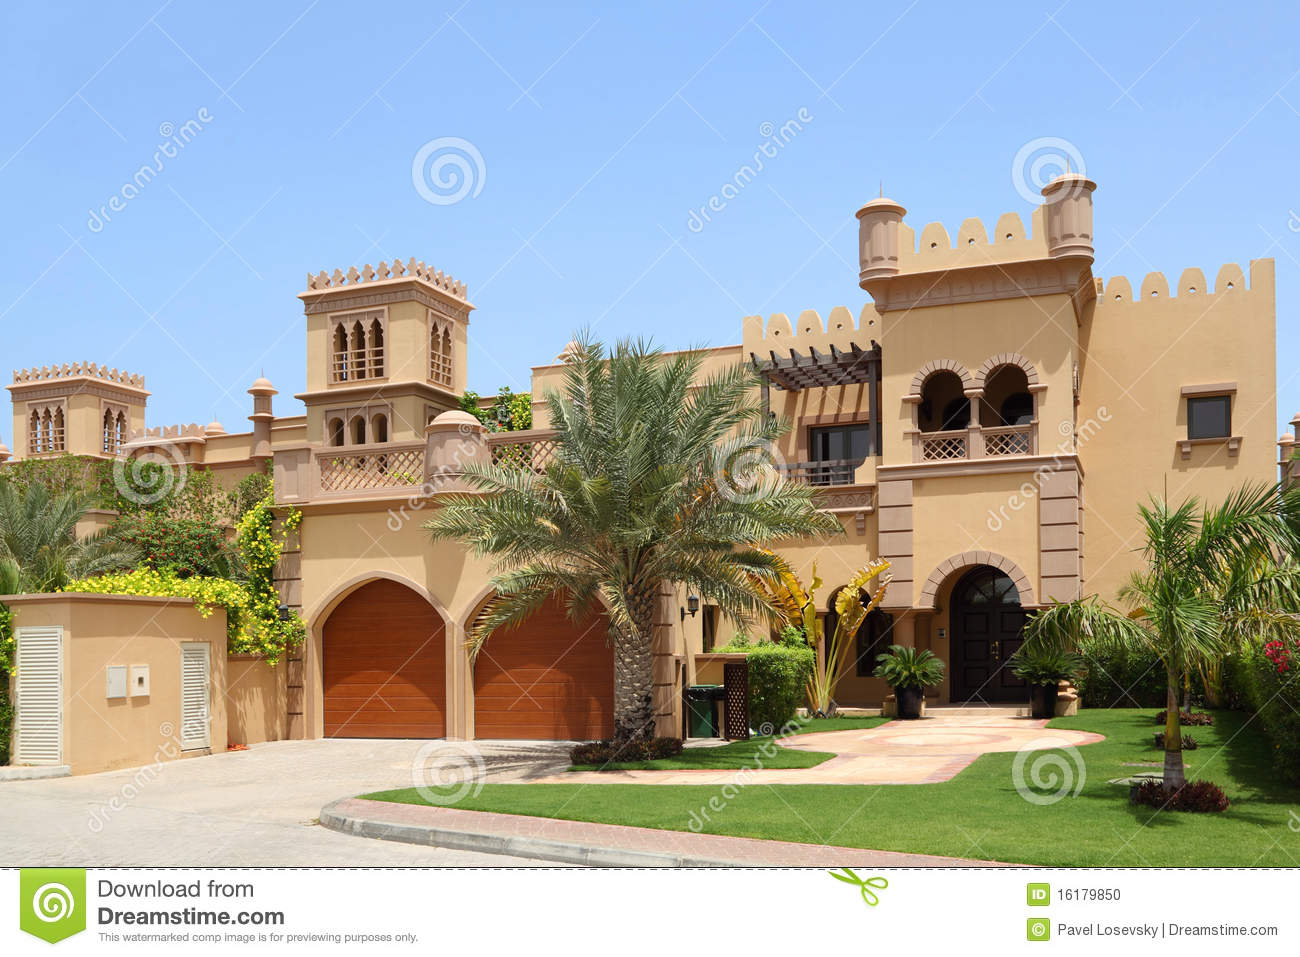 Arabian style house with two garages and archs stock photo for Arabic home design